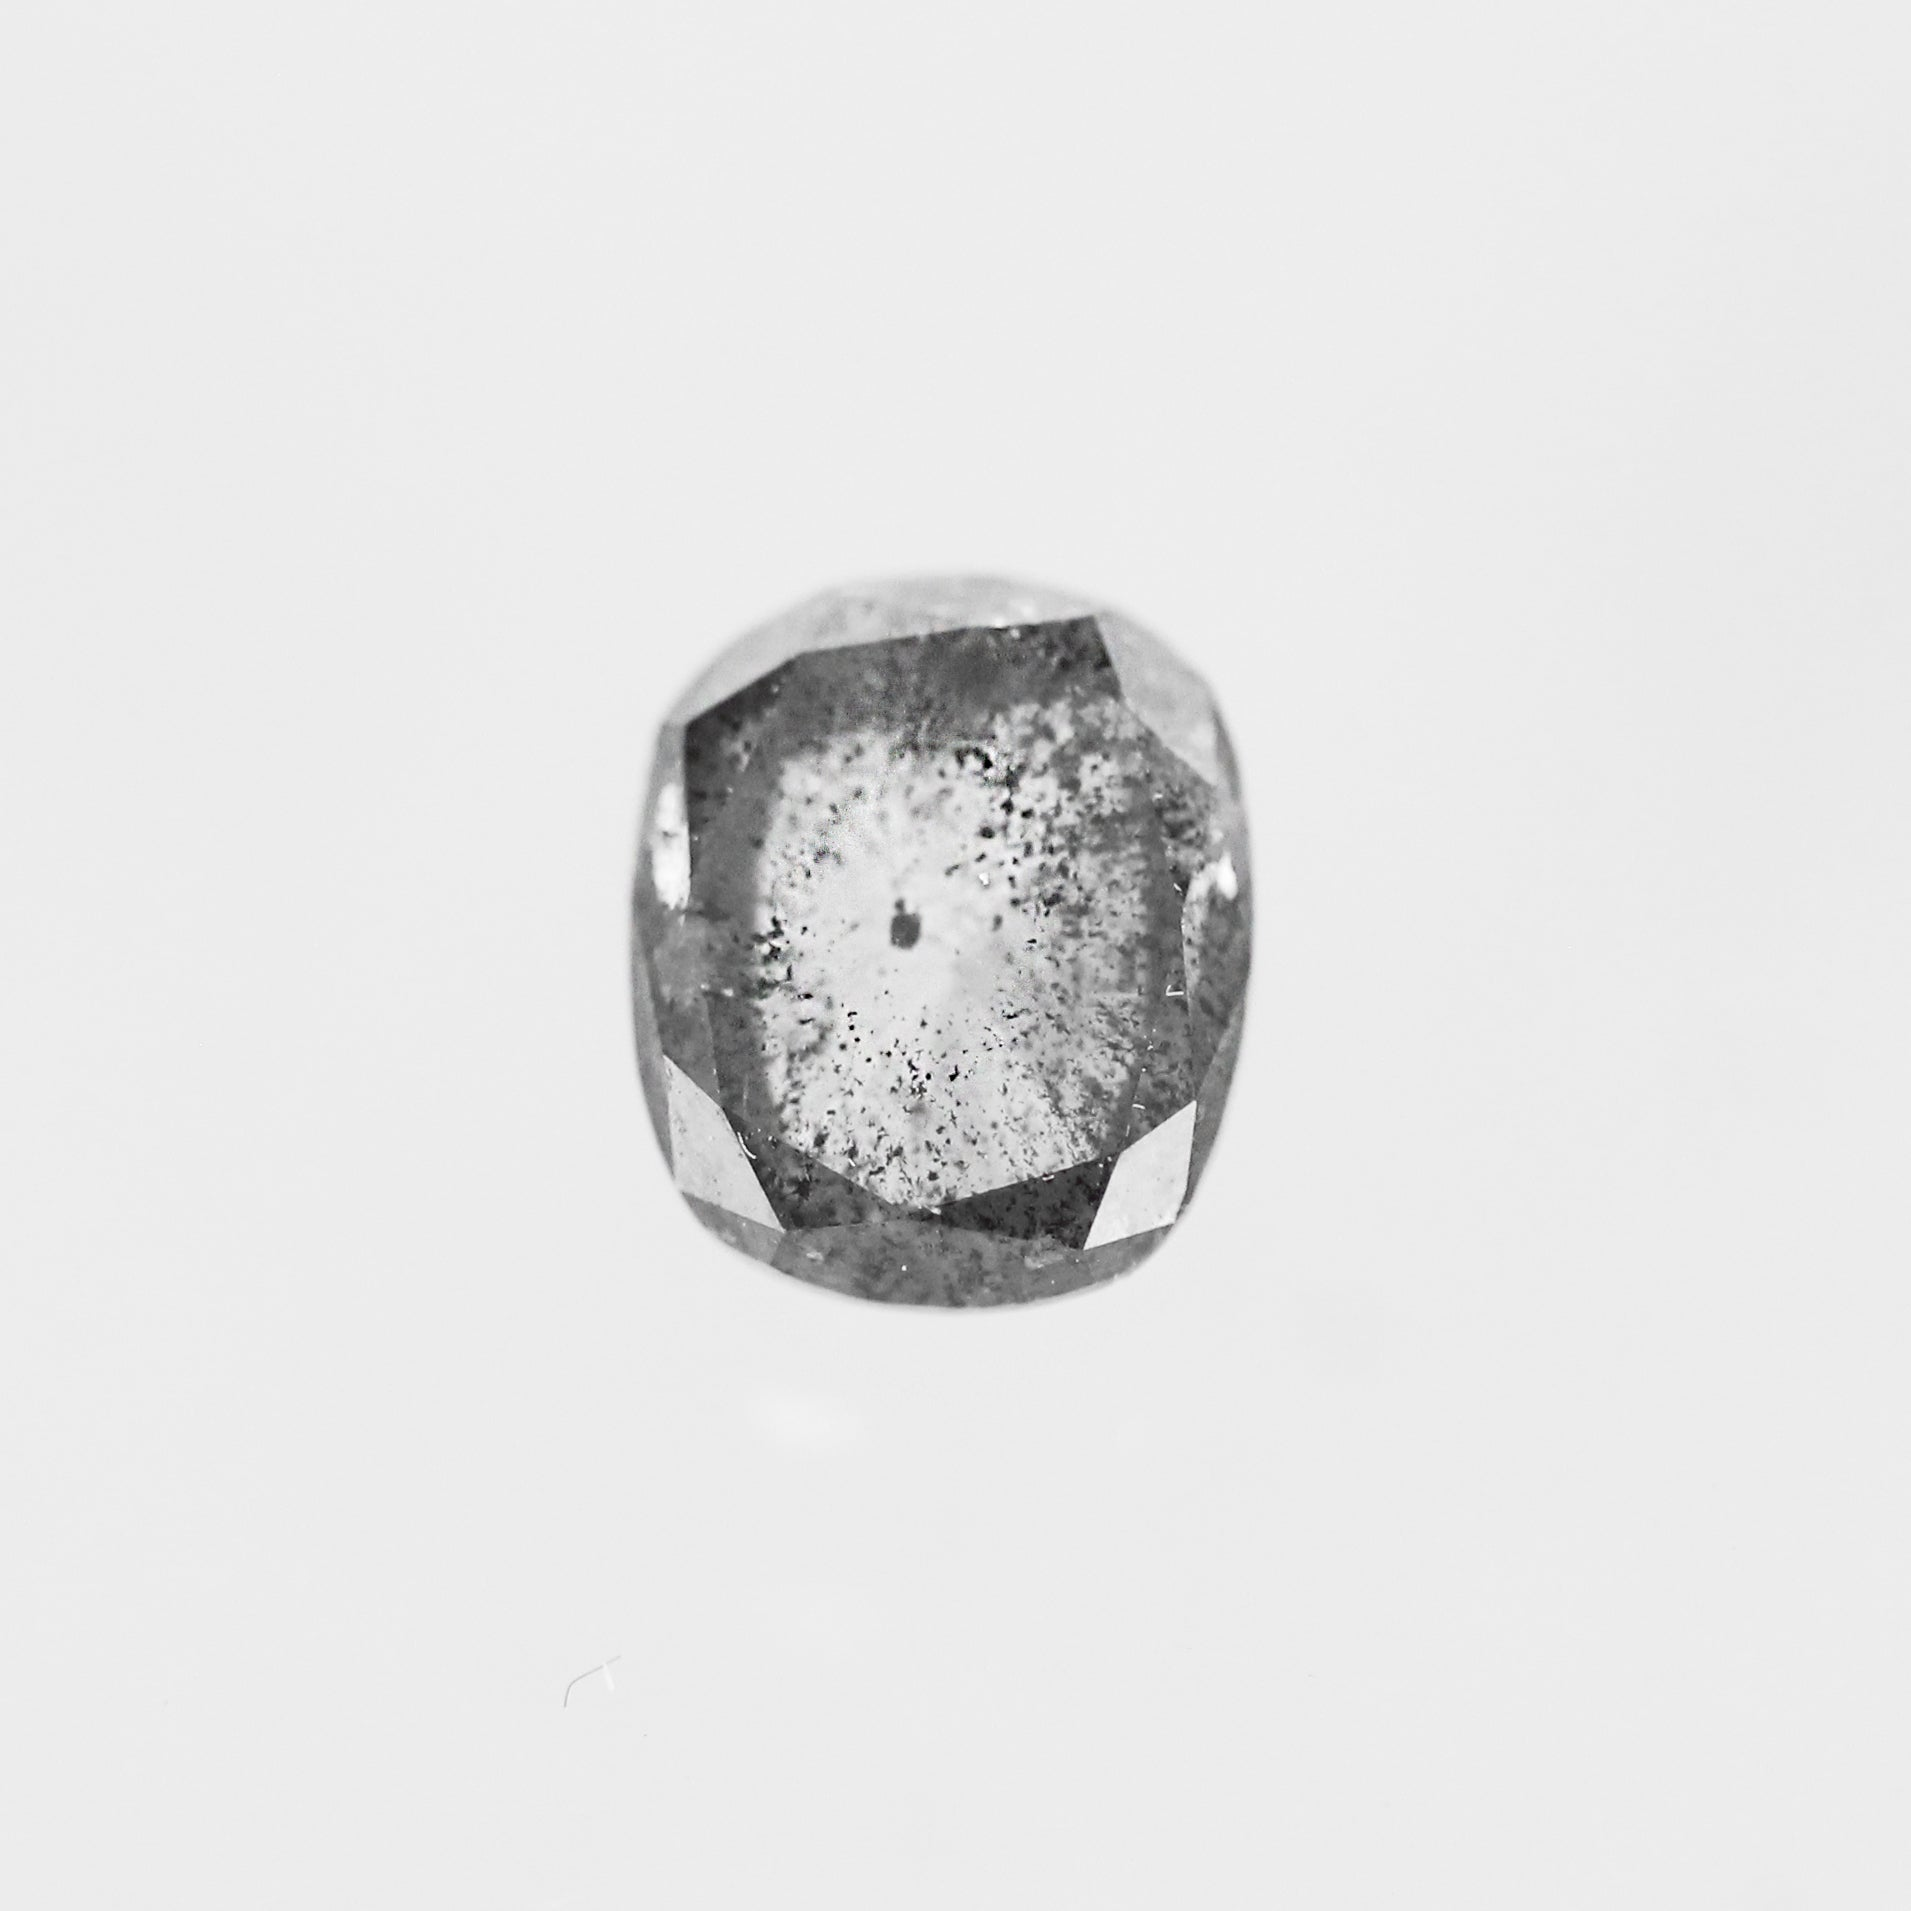 1.03 Carat Oval Celestial Diamond® for Custom Work - Inventory Code GO103 - Celestial Diamonds ® by Midwinter Co.